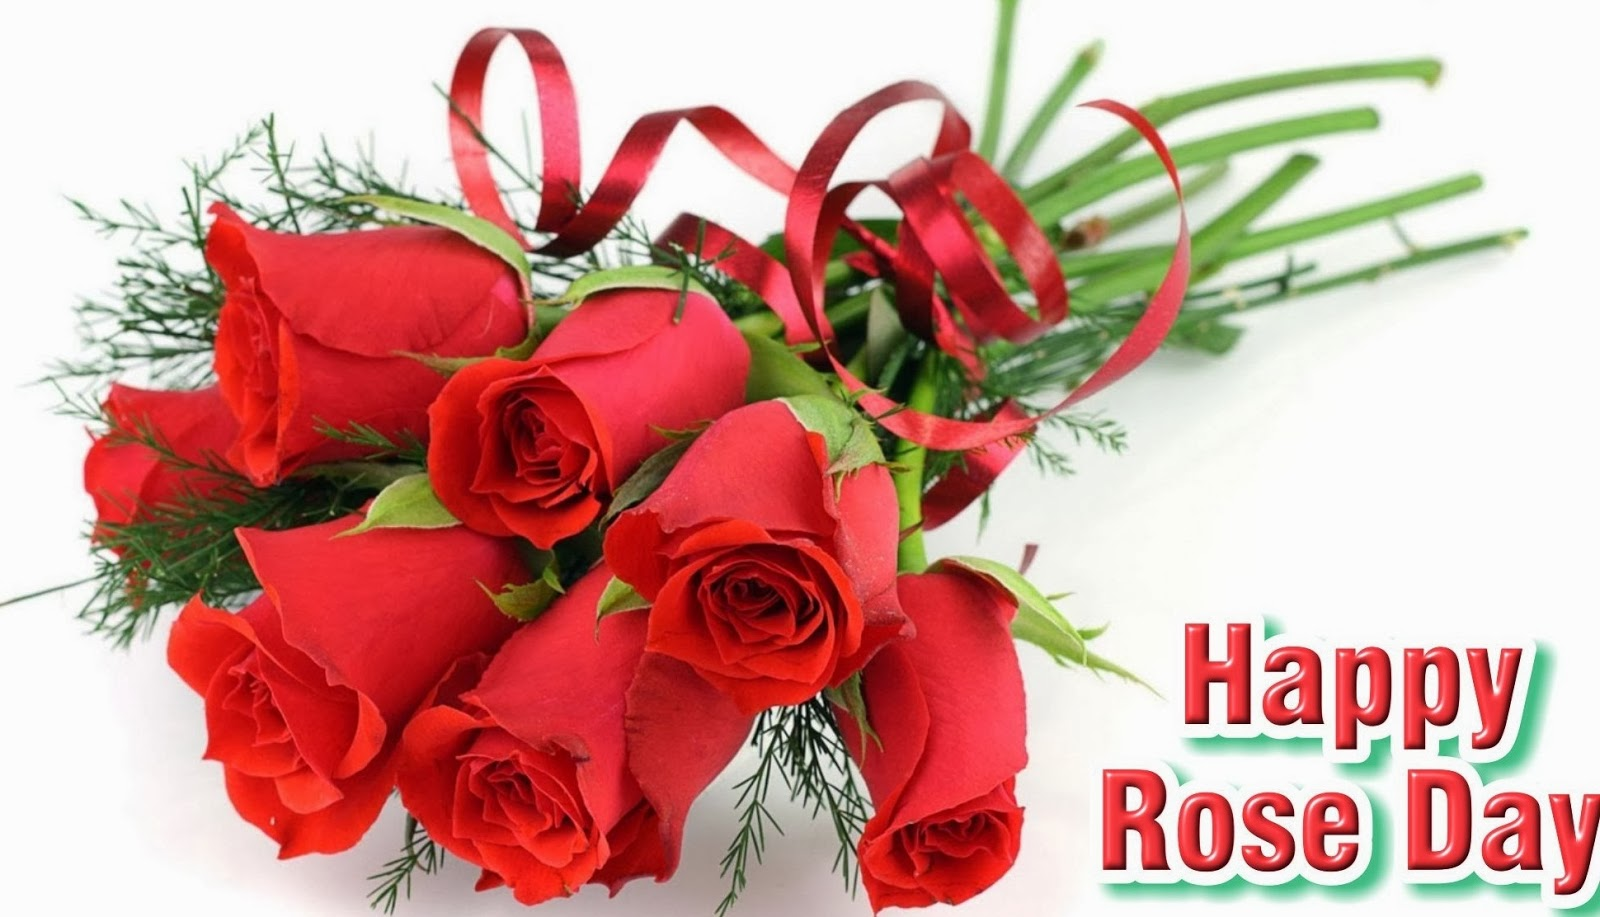 Rose Day 2014 Very Funny Jokes Sms Messages In Hindi For Facebook